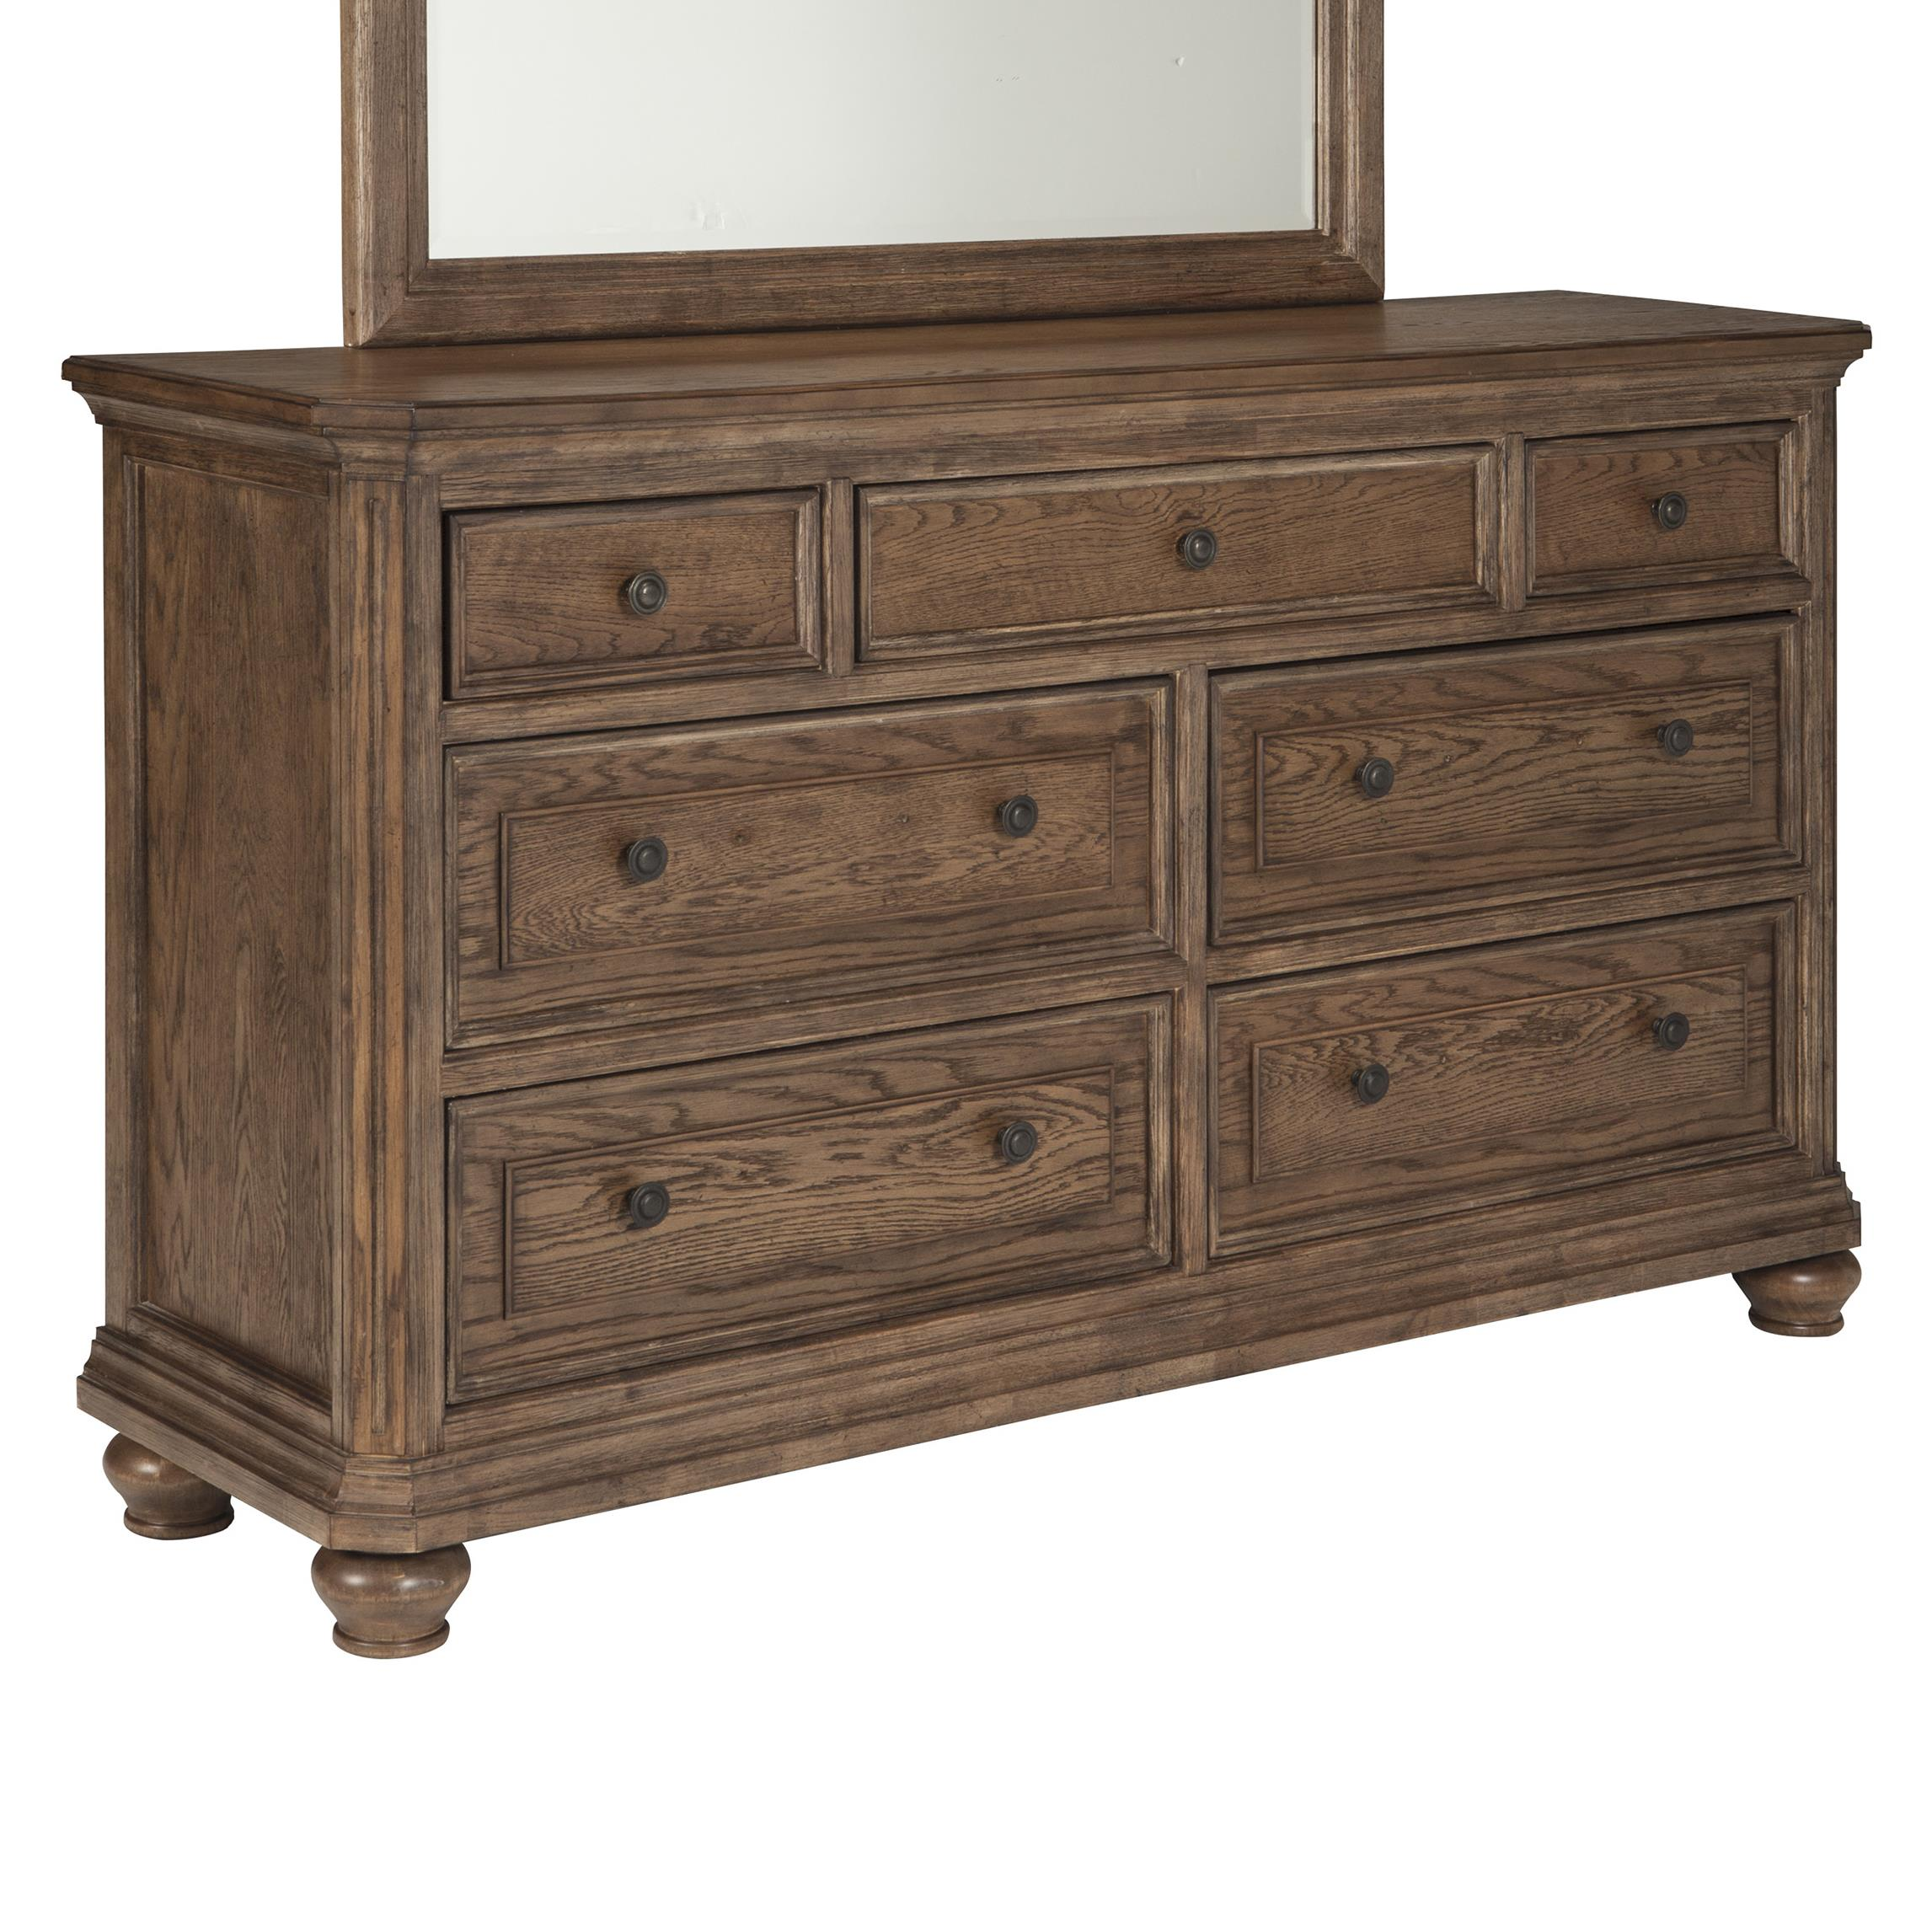 Signature Design by Ashley Maeleen Dresser - Item Number: B709-31